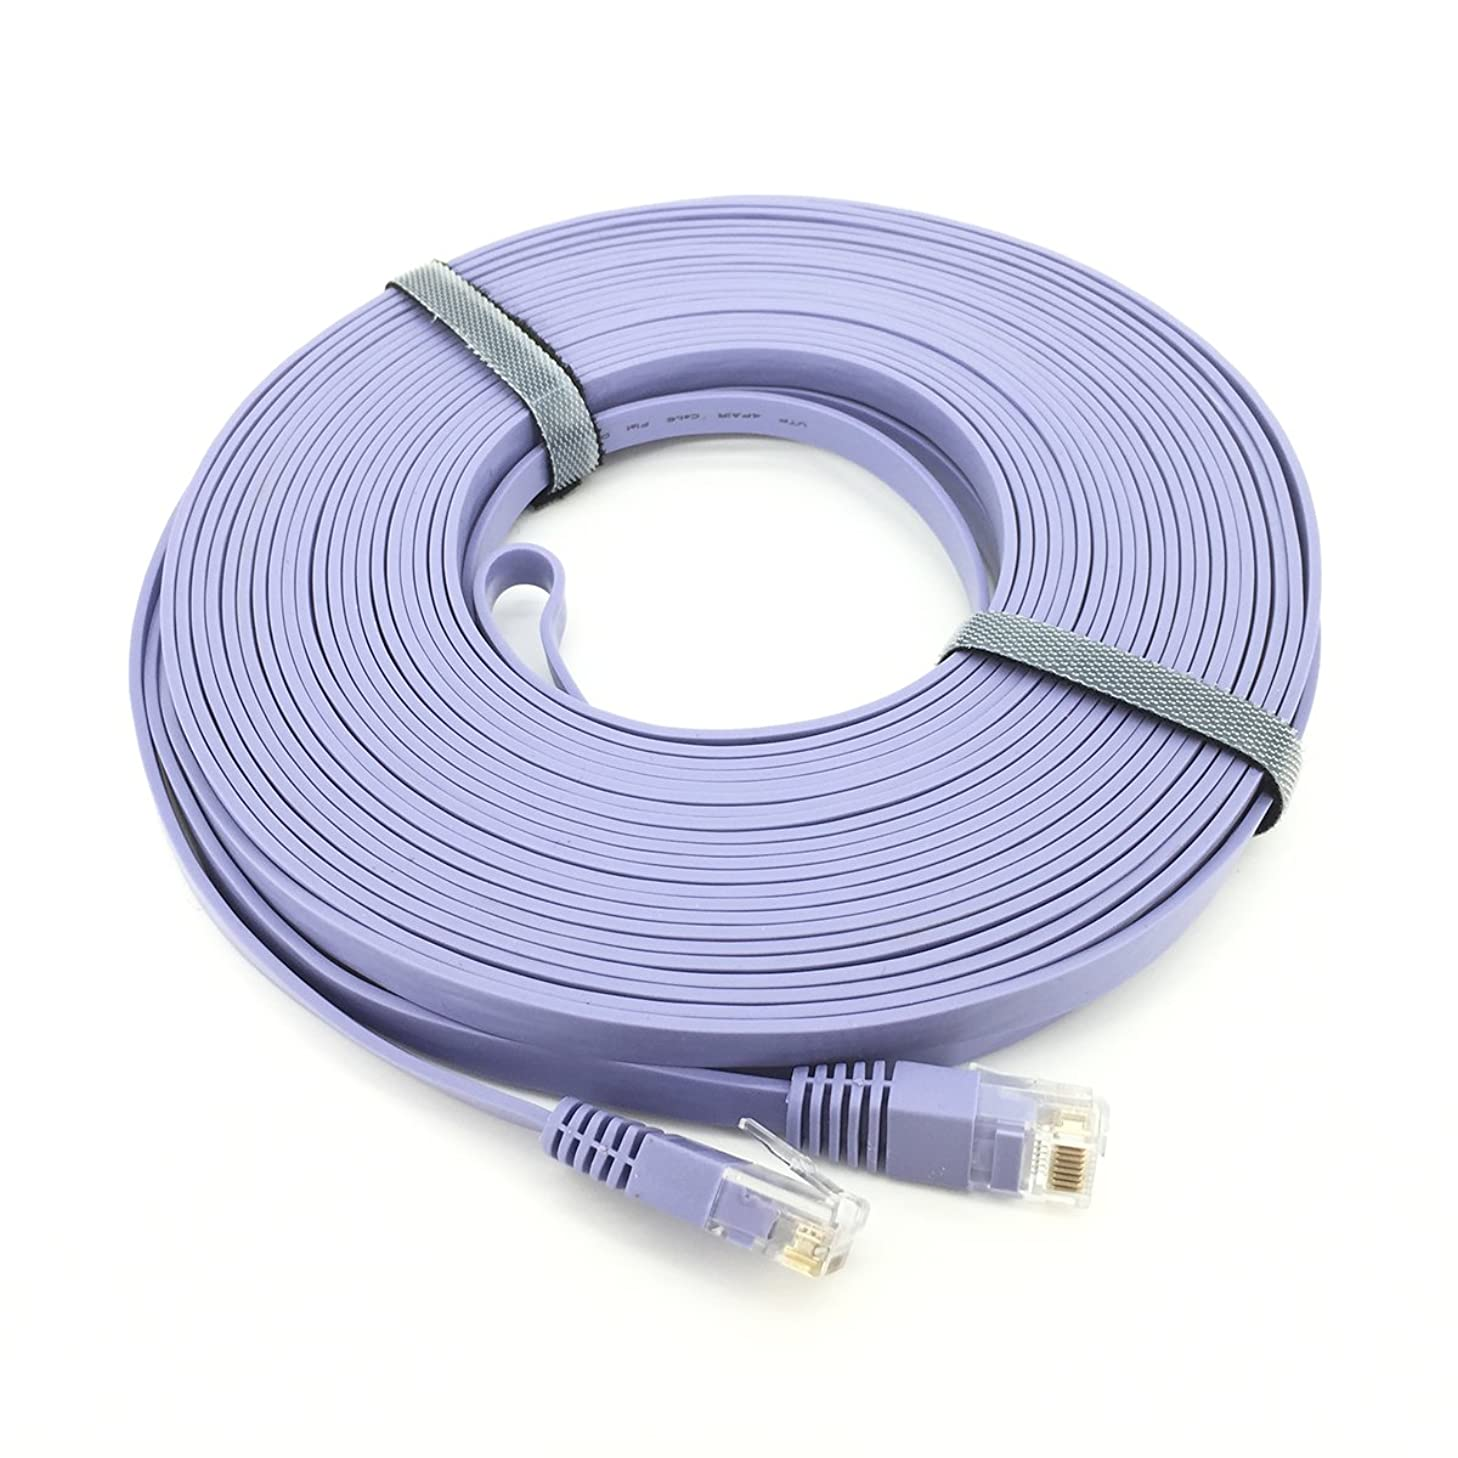 Pasow CAT 6 Ethernet Patch Cable Flat Snagless Network LAN Cord - Purple (50 Feet)